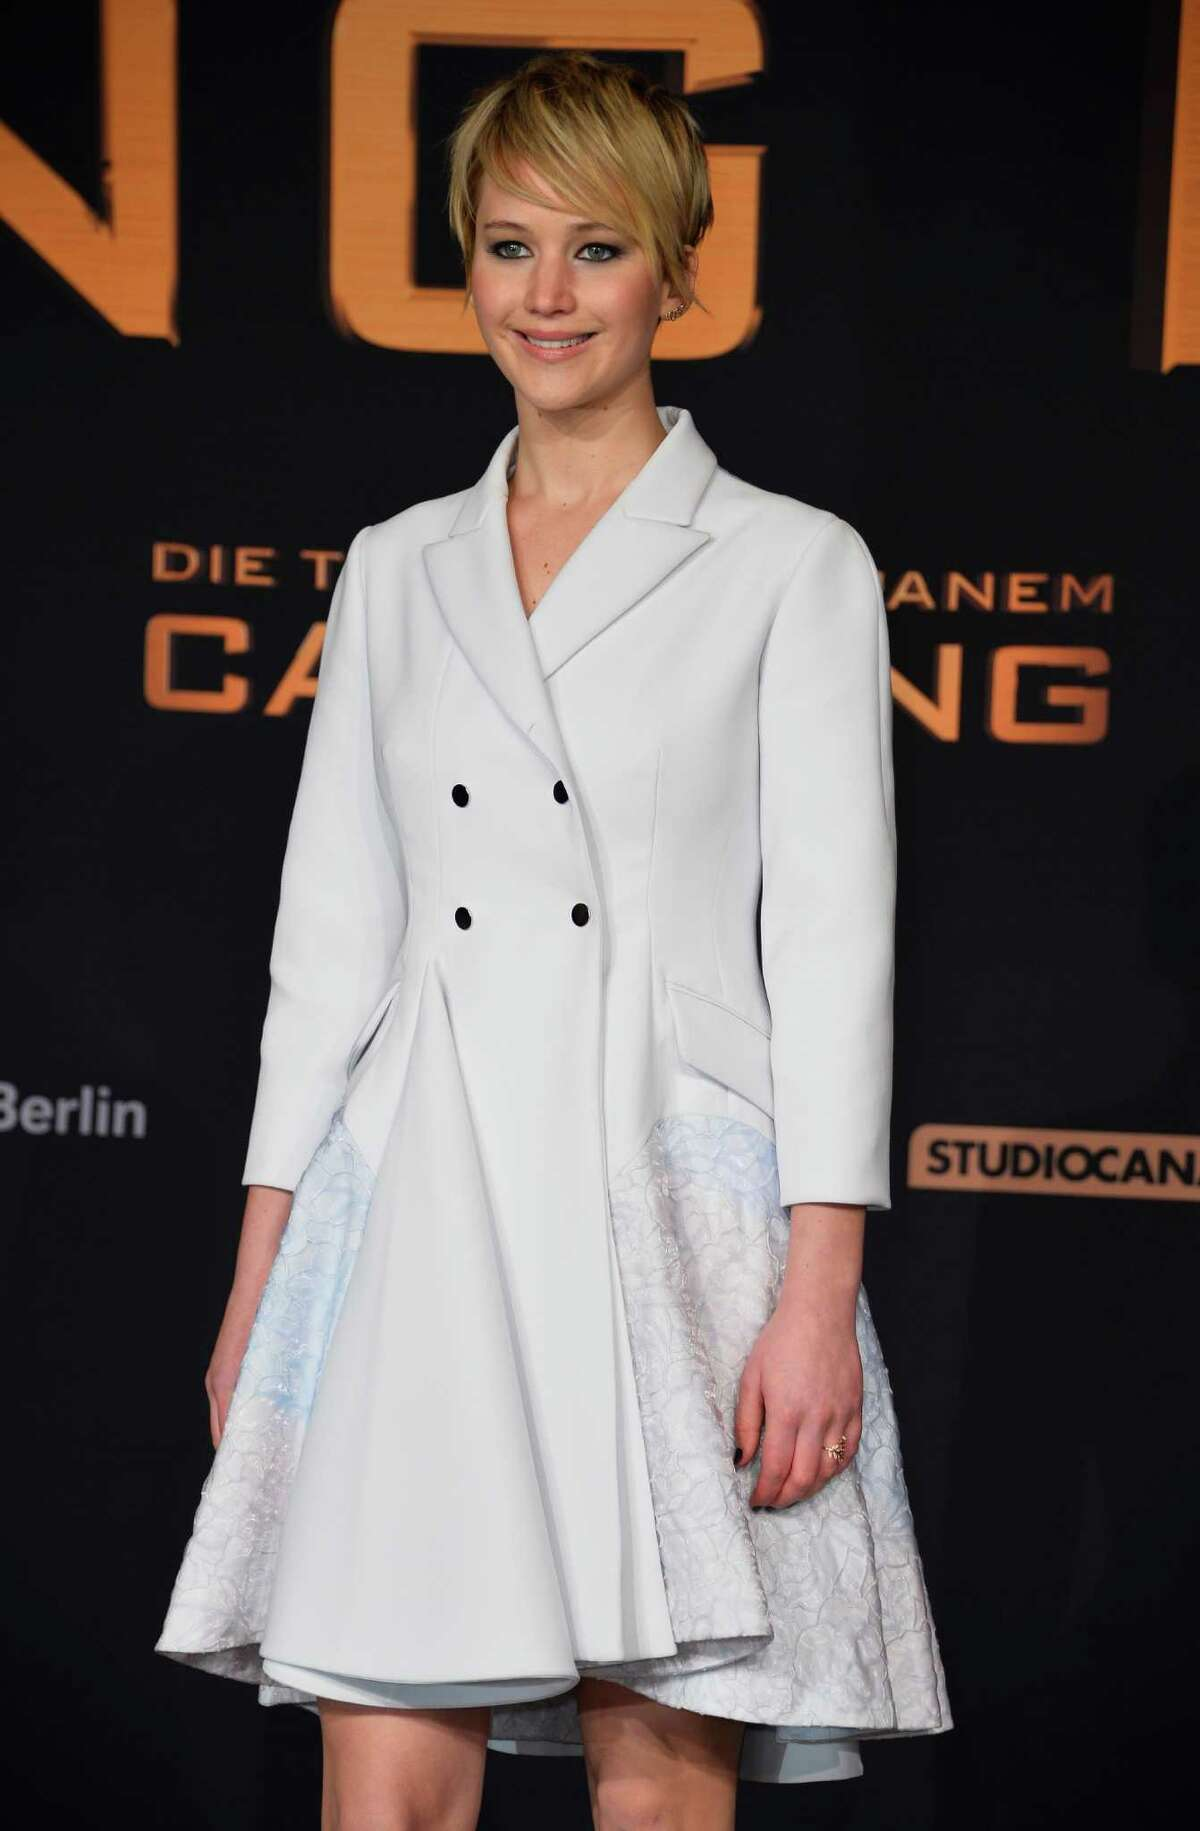 Rooney Mara stepped onto the red carpet wearing a white lurex dress by Balenciaga.